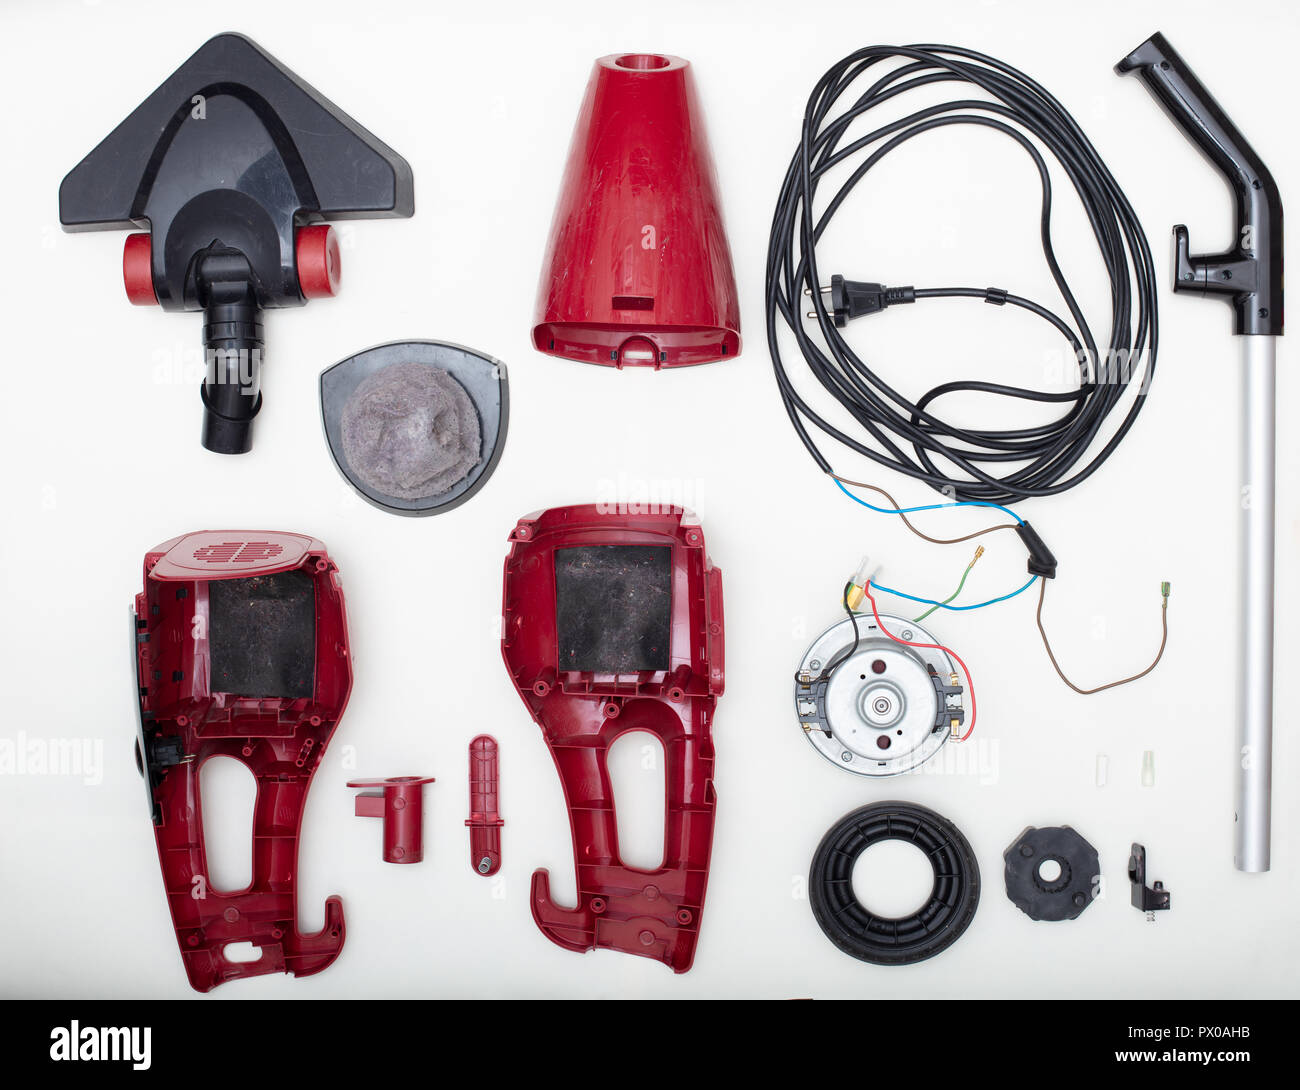 Vacuum cleaner, vacuum cleaner parts, disassembled vacuum cleaner with dirty filter - Stock Image